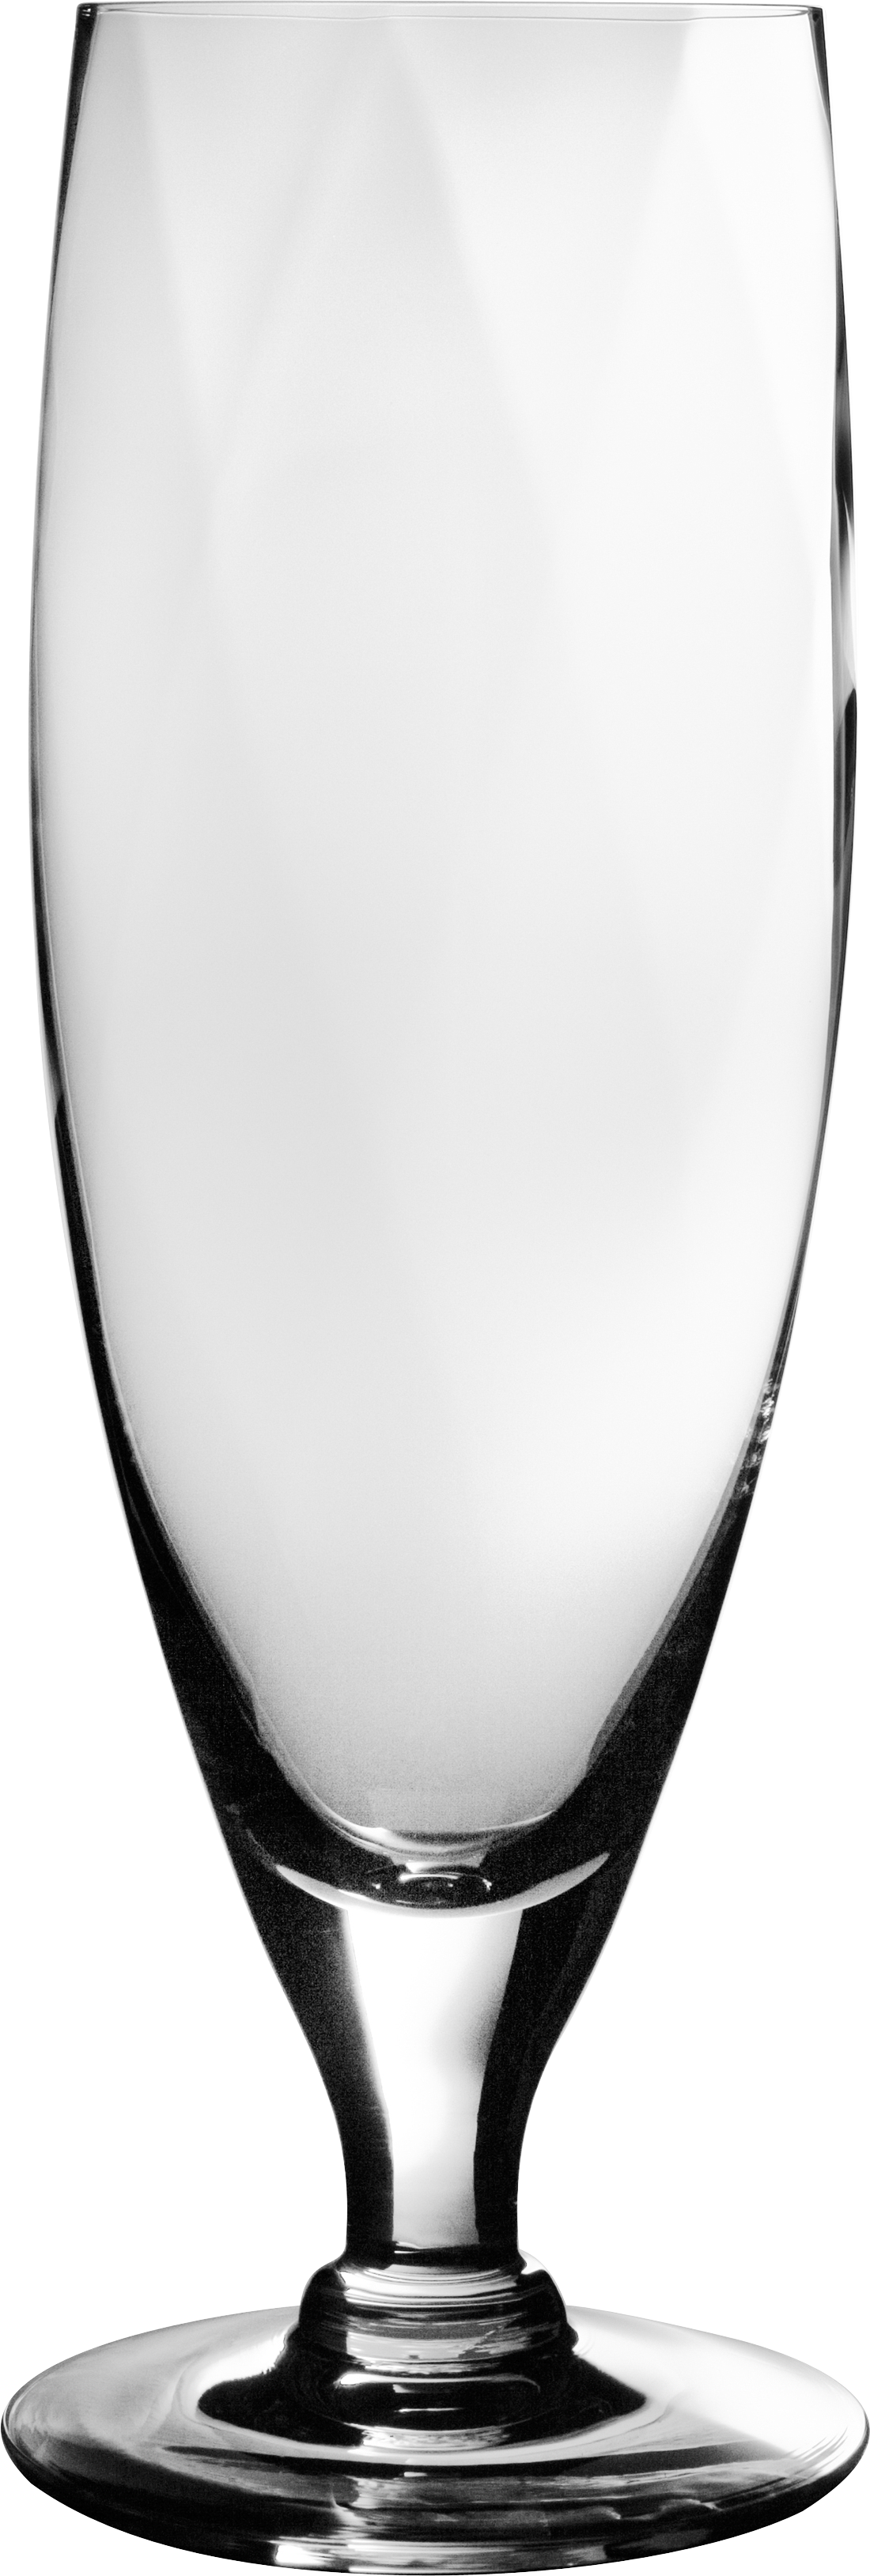 glasses clipart glass cup